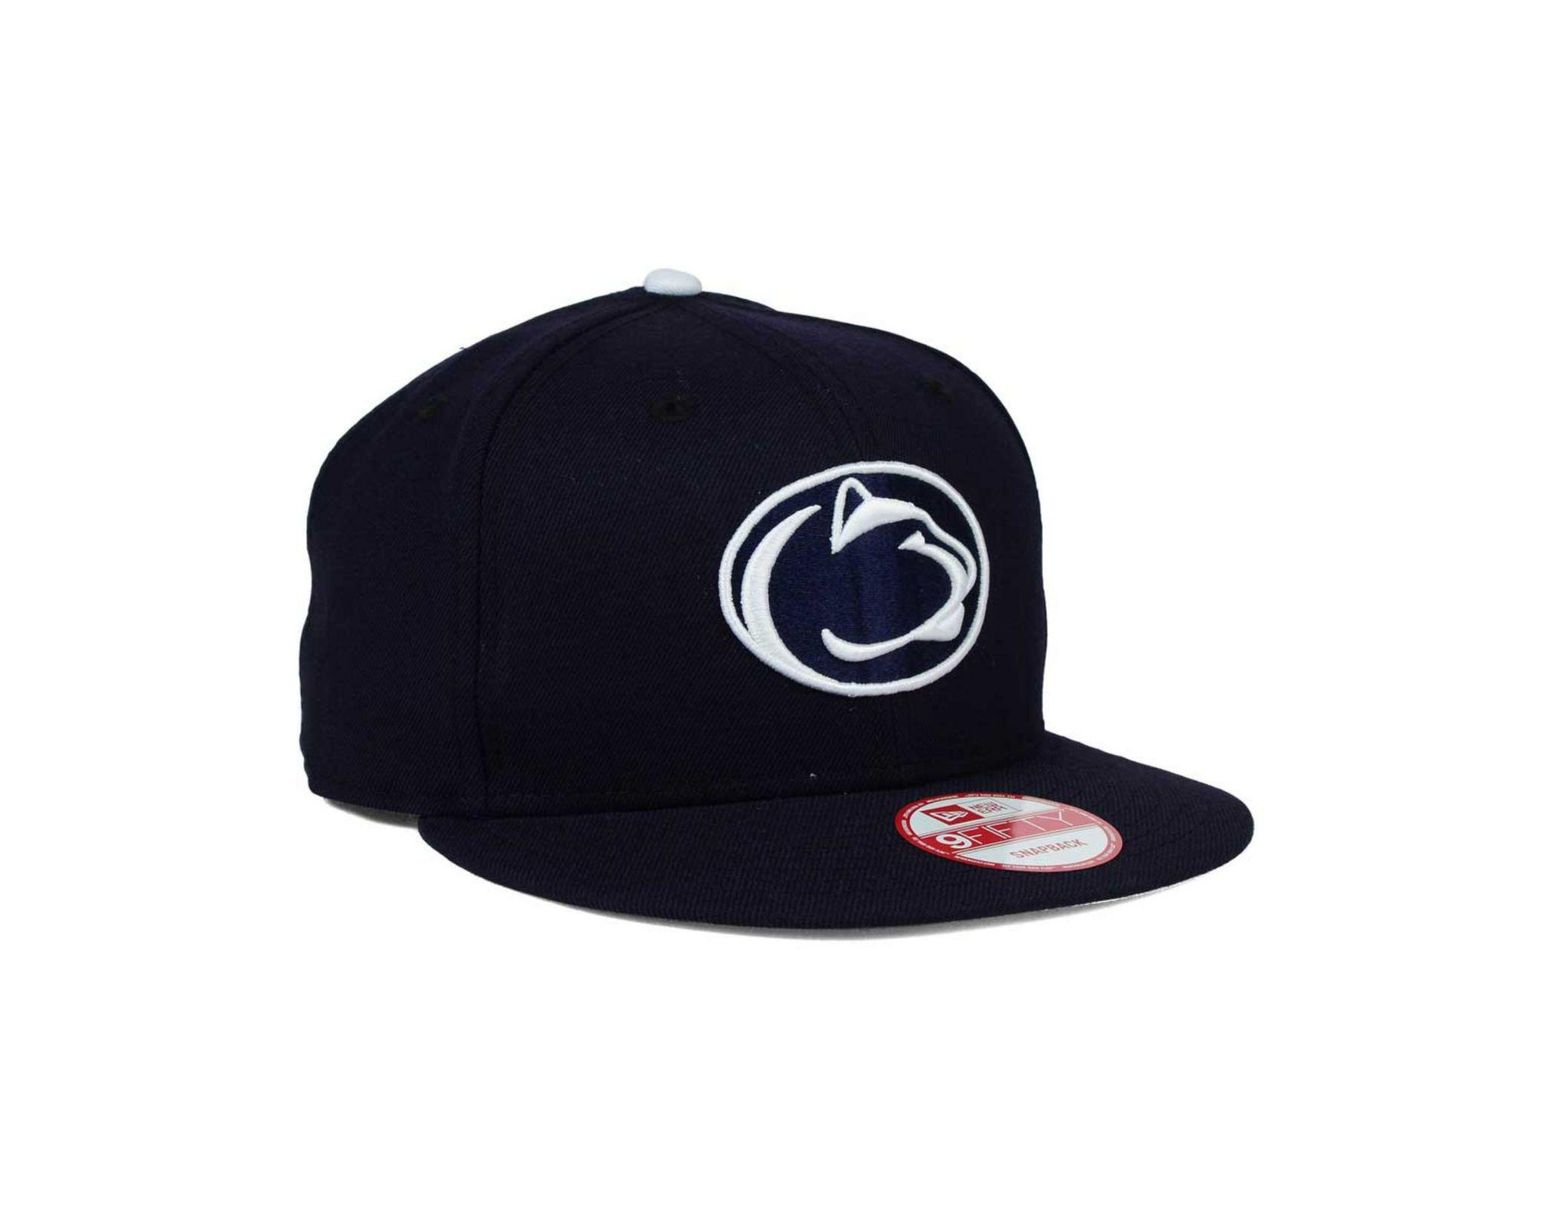 best authentic 97bf6 770a1 Lyst - KTZ Penn State Nittany Lions Core 9fifty Snapback Cap in Blue for Men